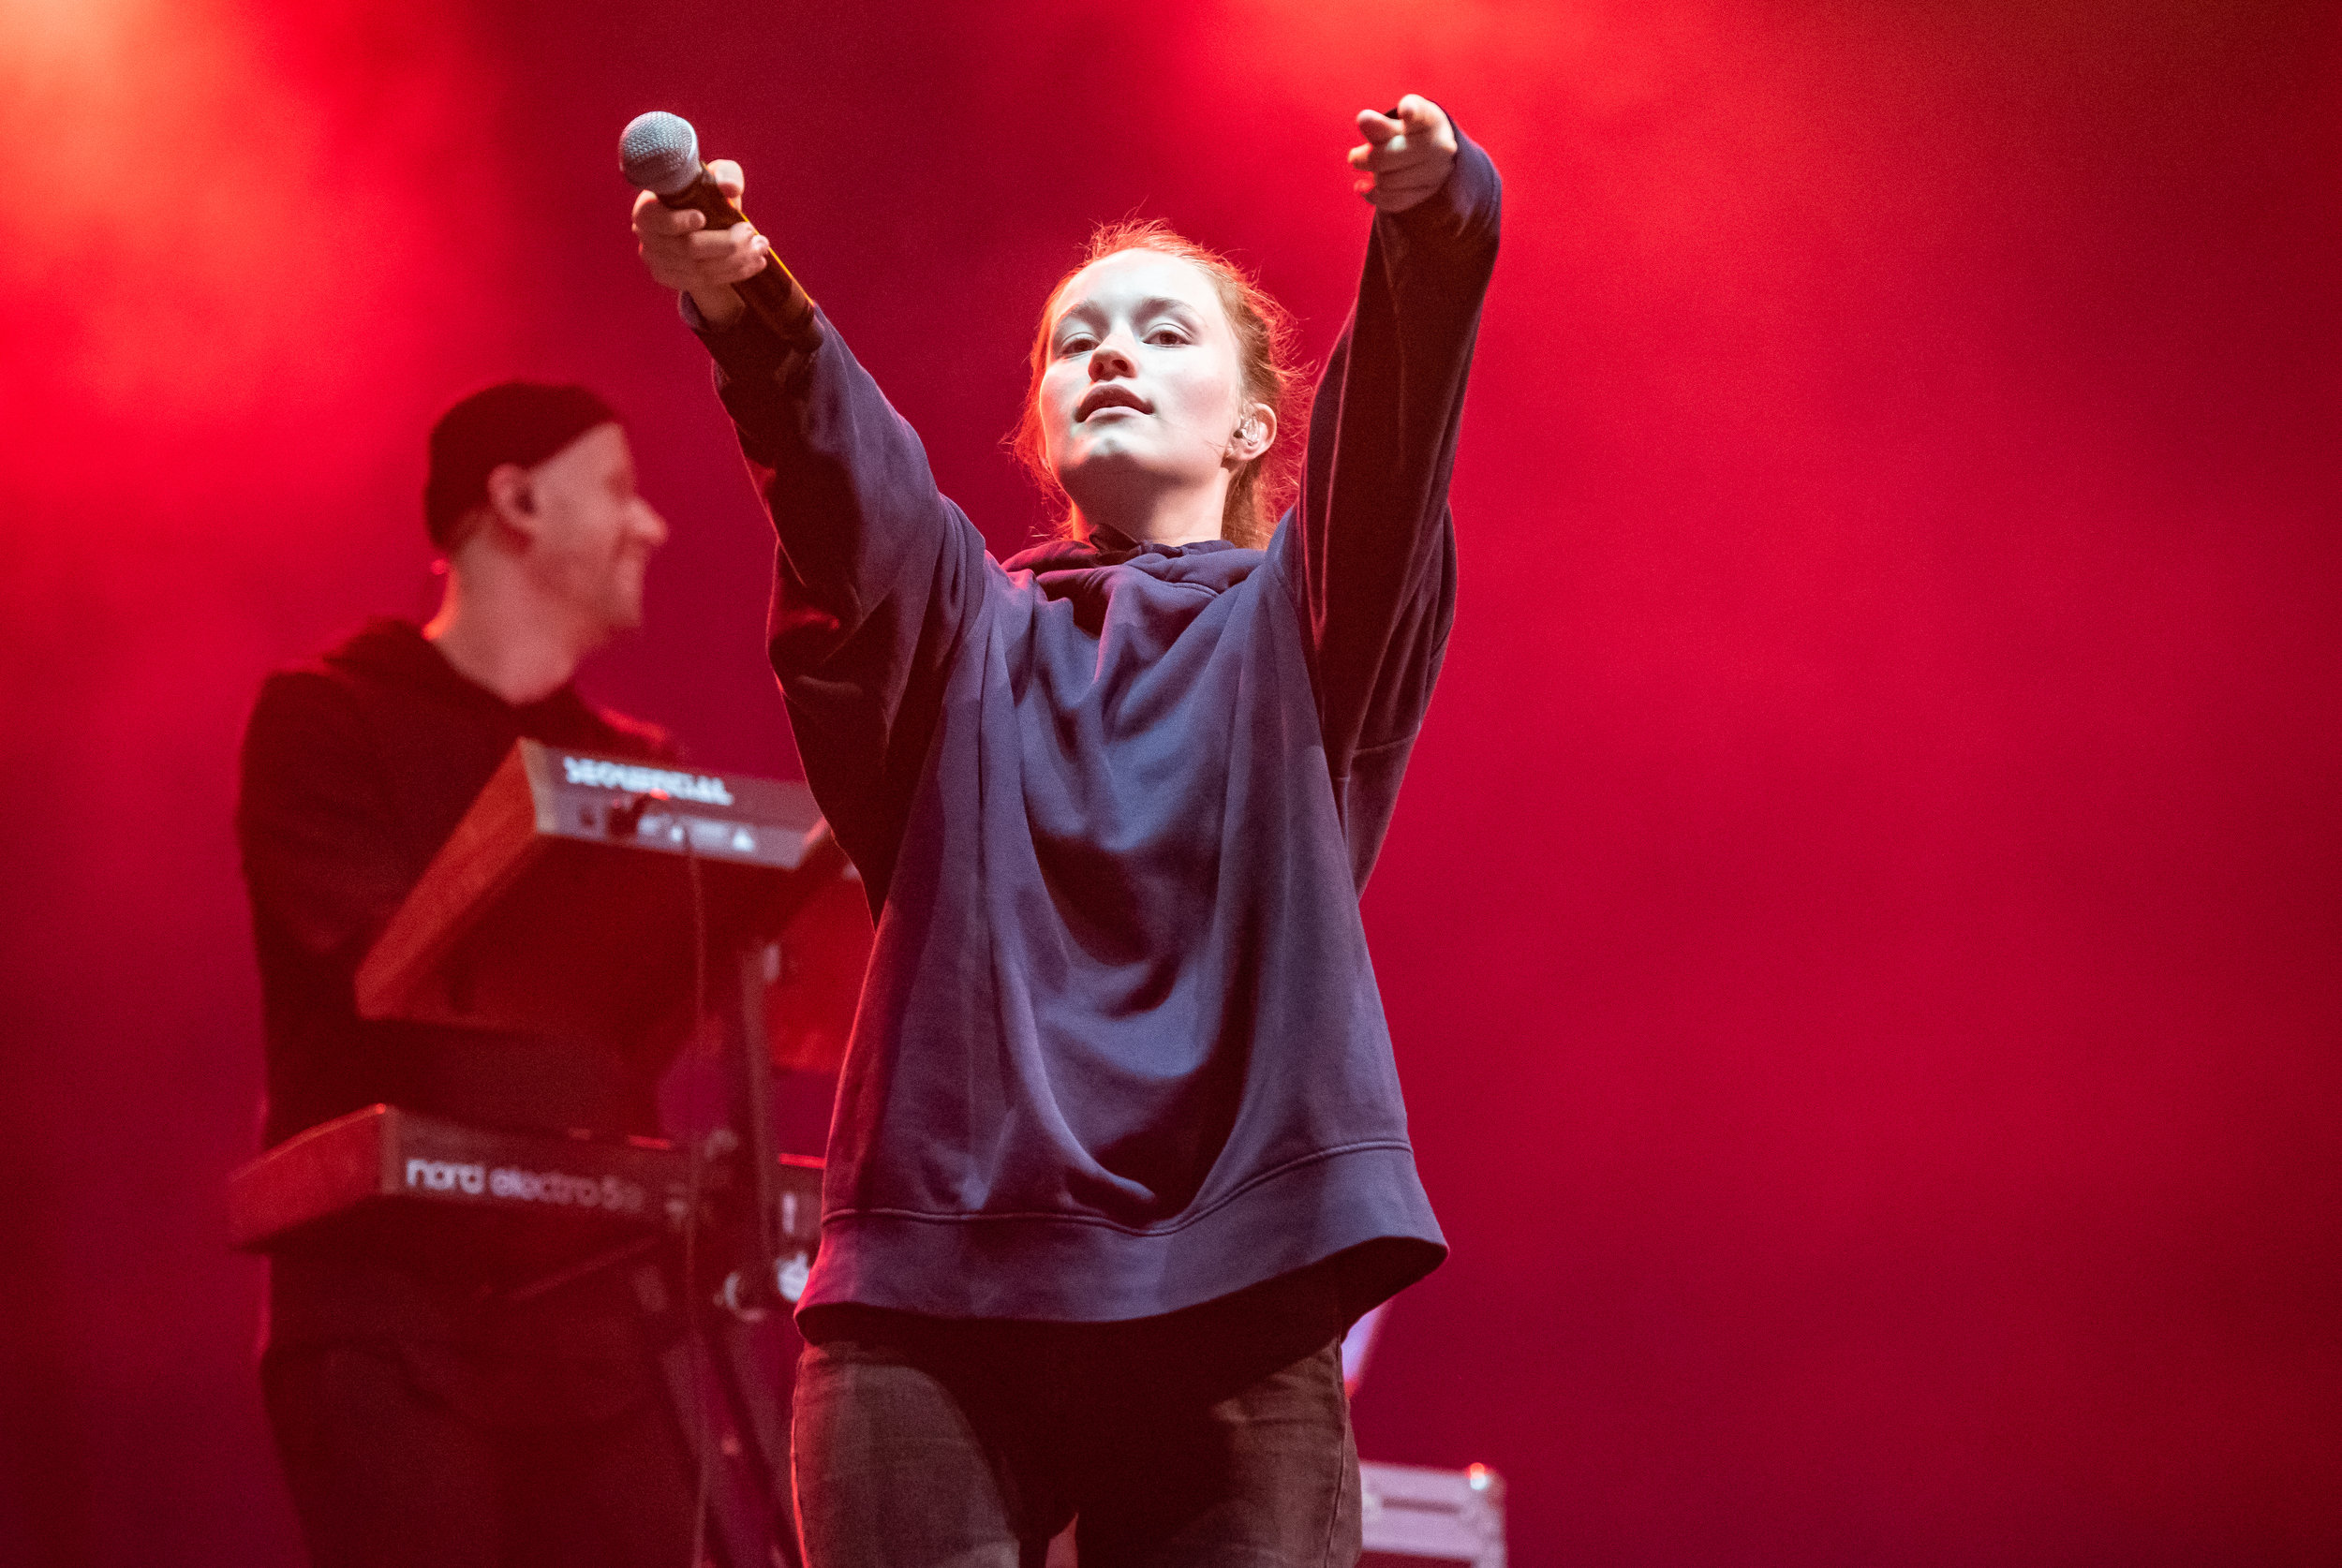 SIGRID PERFORMING ON BBC RADIO 1 STAGE ON THE LAST DAY OF LEEDS FESTIVAL 2018 - 26.08.2018  PICTURE BY: CALUM BUCHAN PHOTOGRAPHY